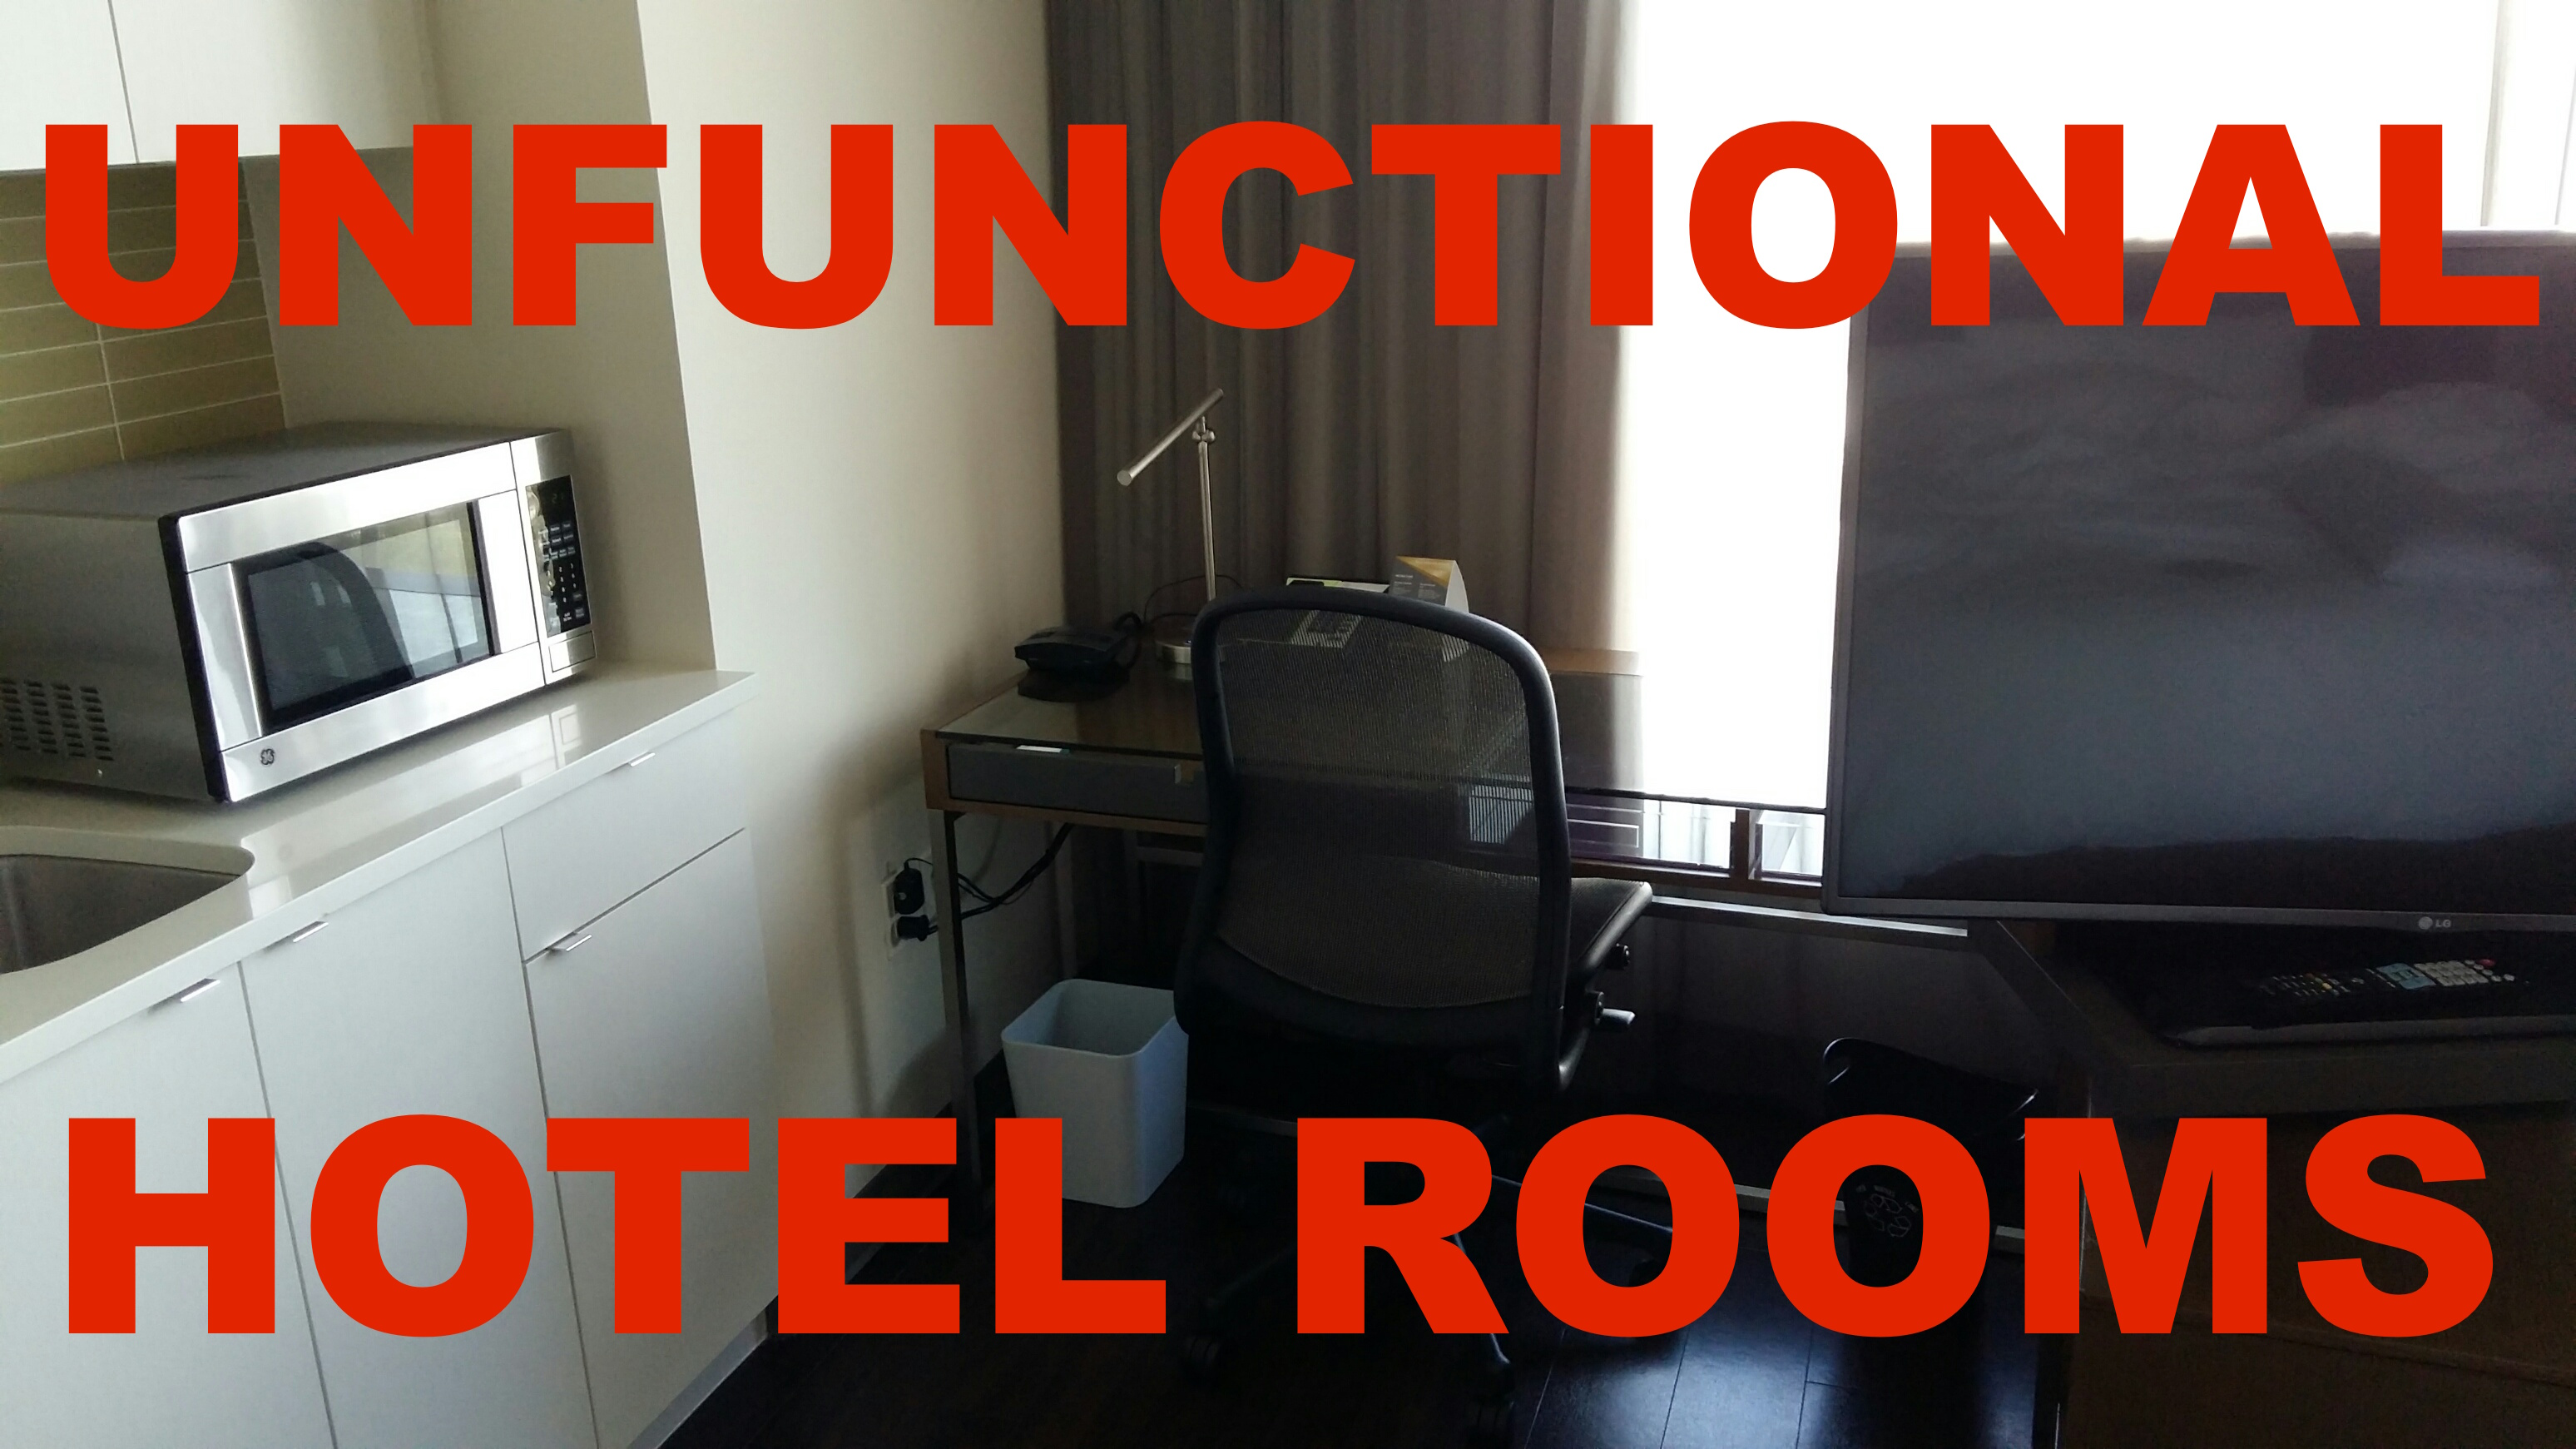 How To Avoid Hotels With Unfunctional Room Design And